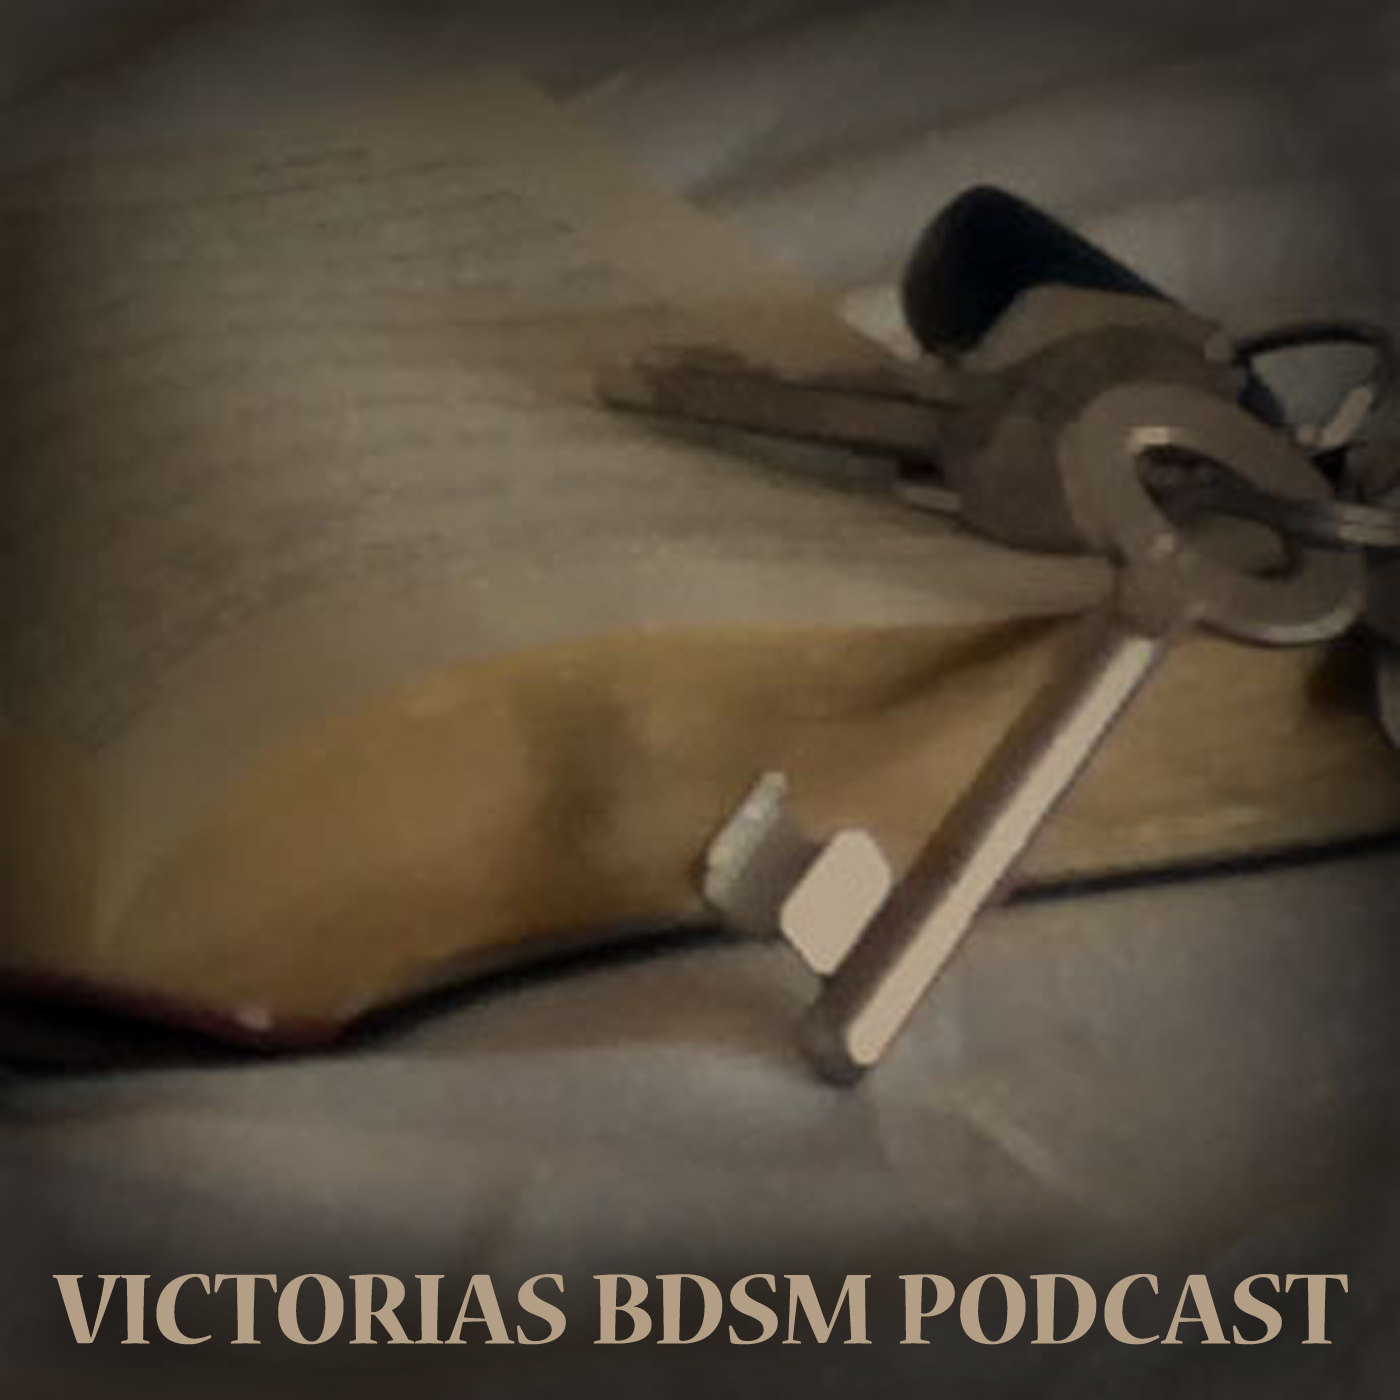 Victorias BDSM Podcast